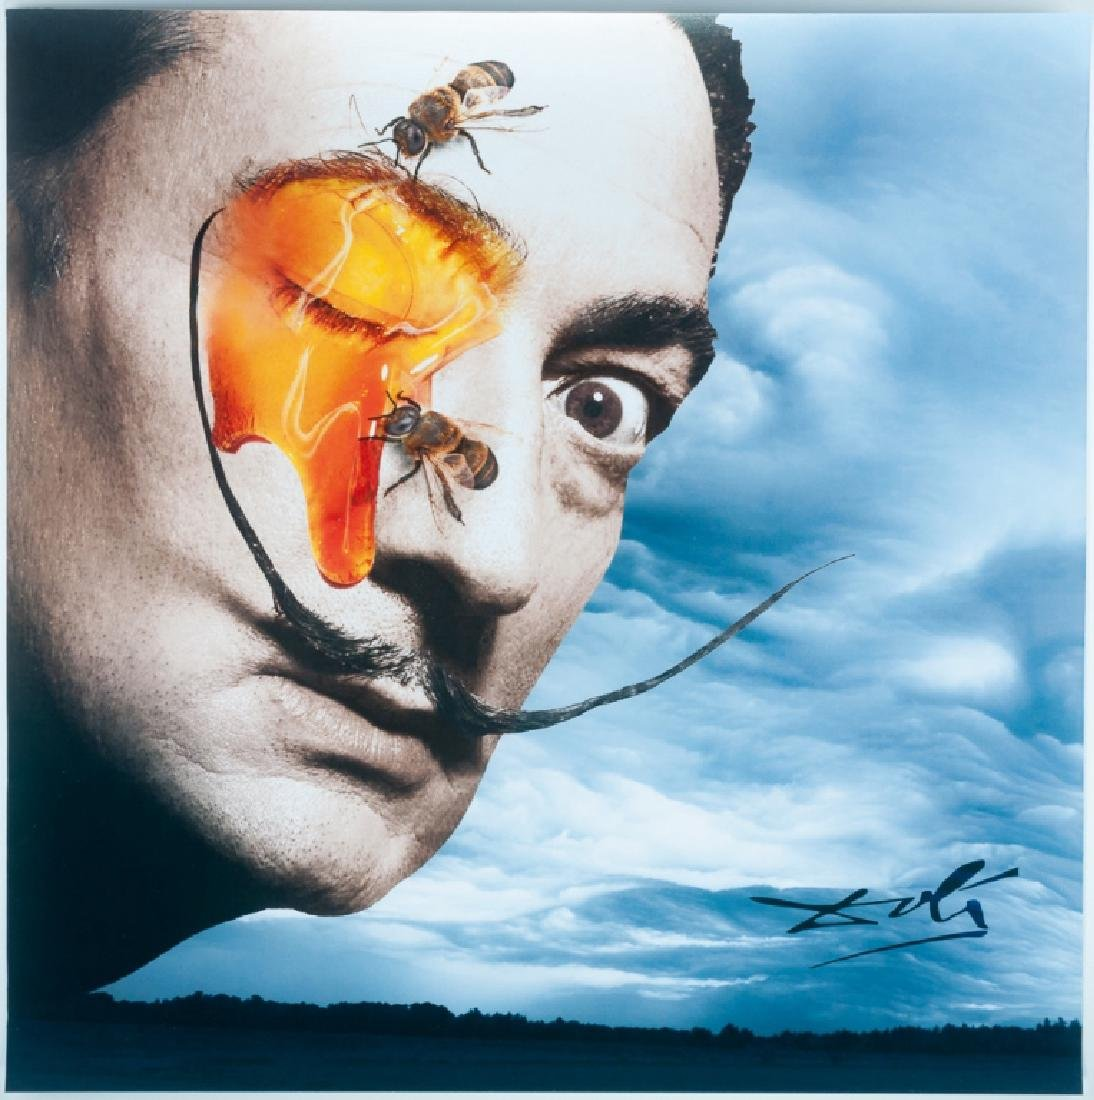 Tan Tolga Demirci Photo Collage, Salvador Dali